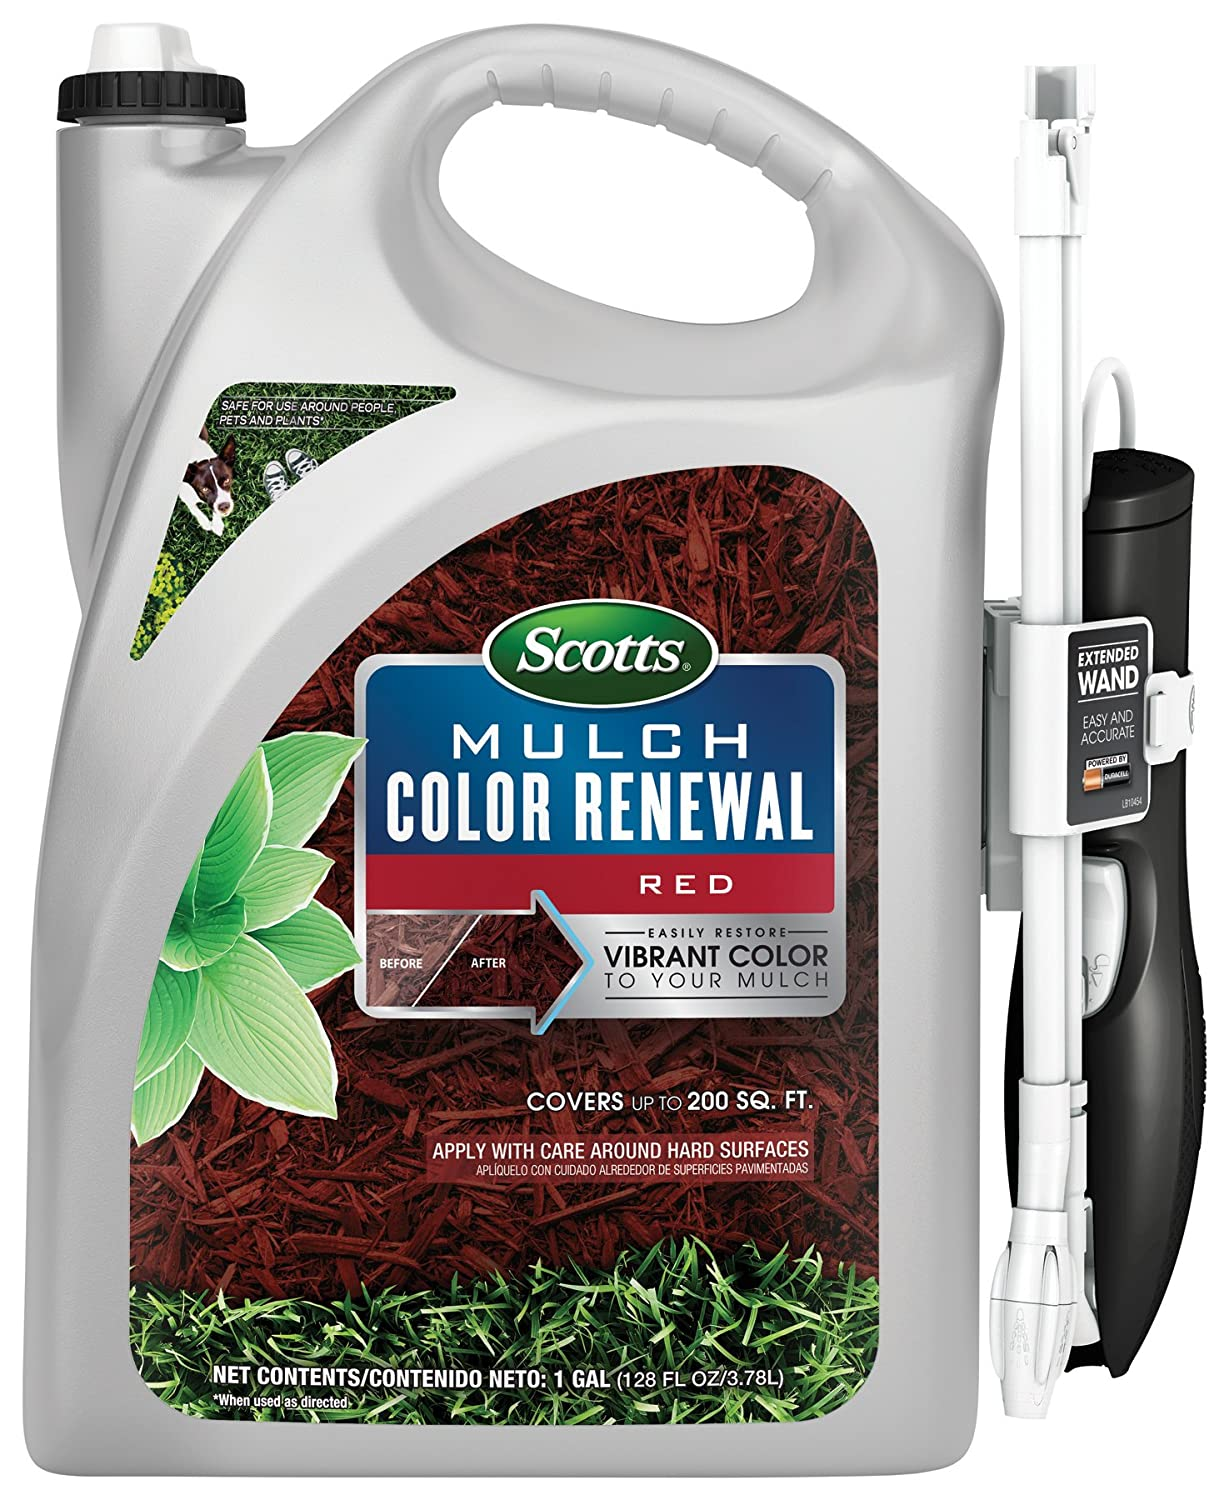 Scotts 1378104 Red Mulch Color Renewal